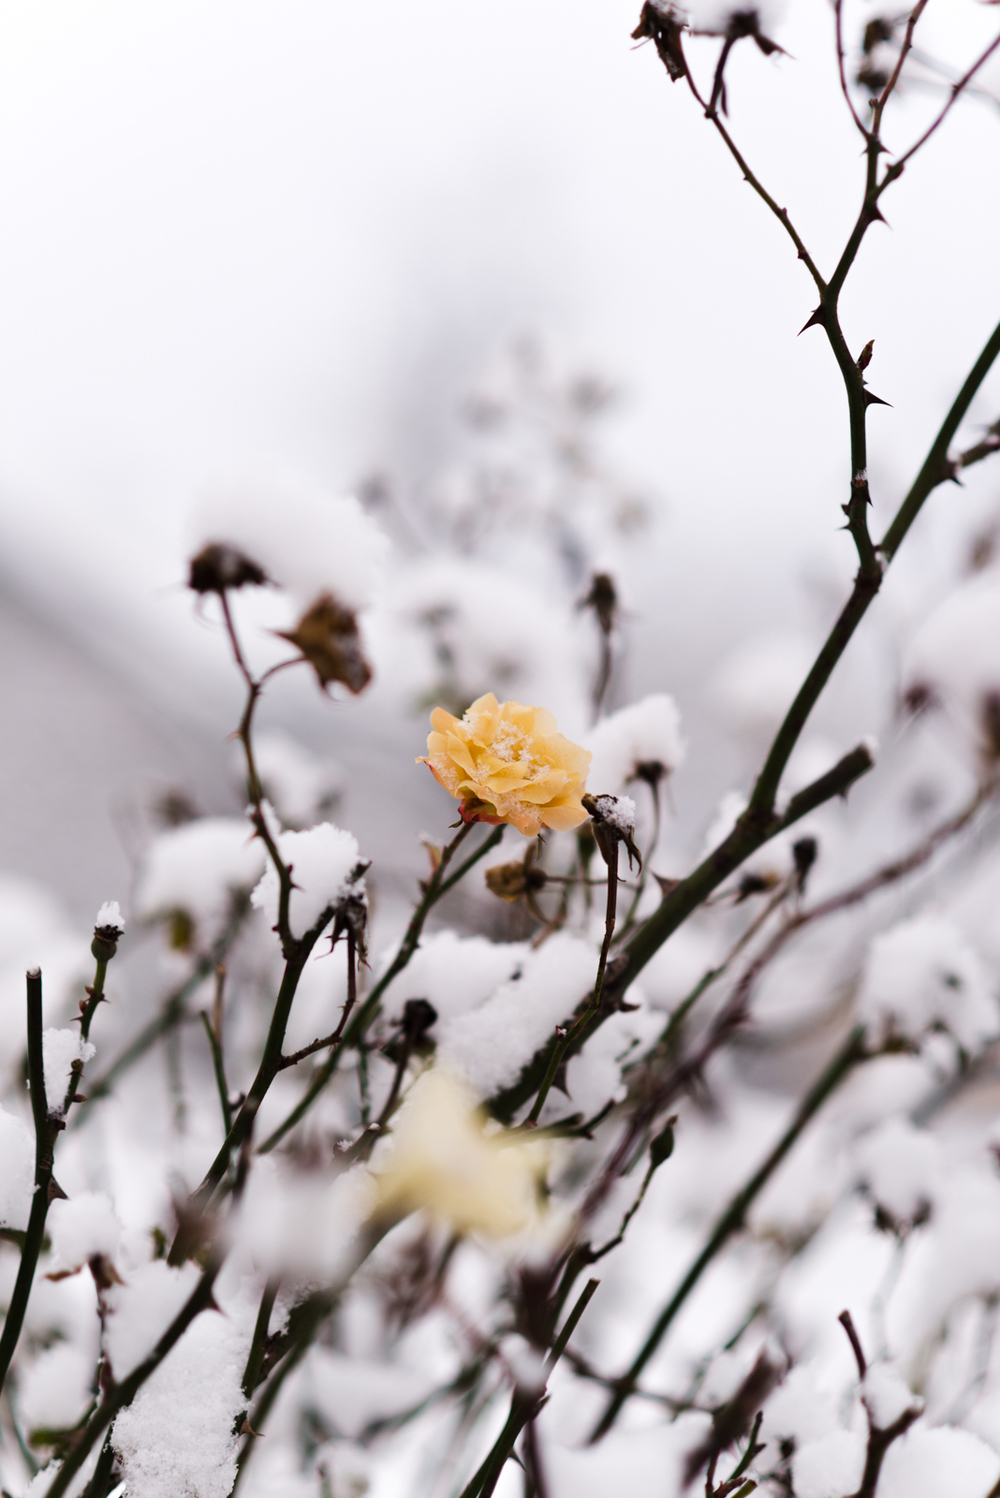 Project 365: #361 - Snow rose